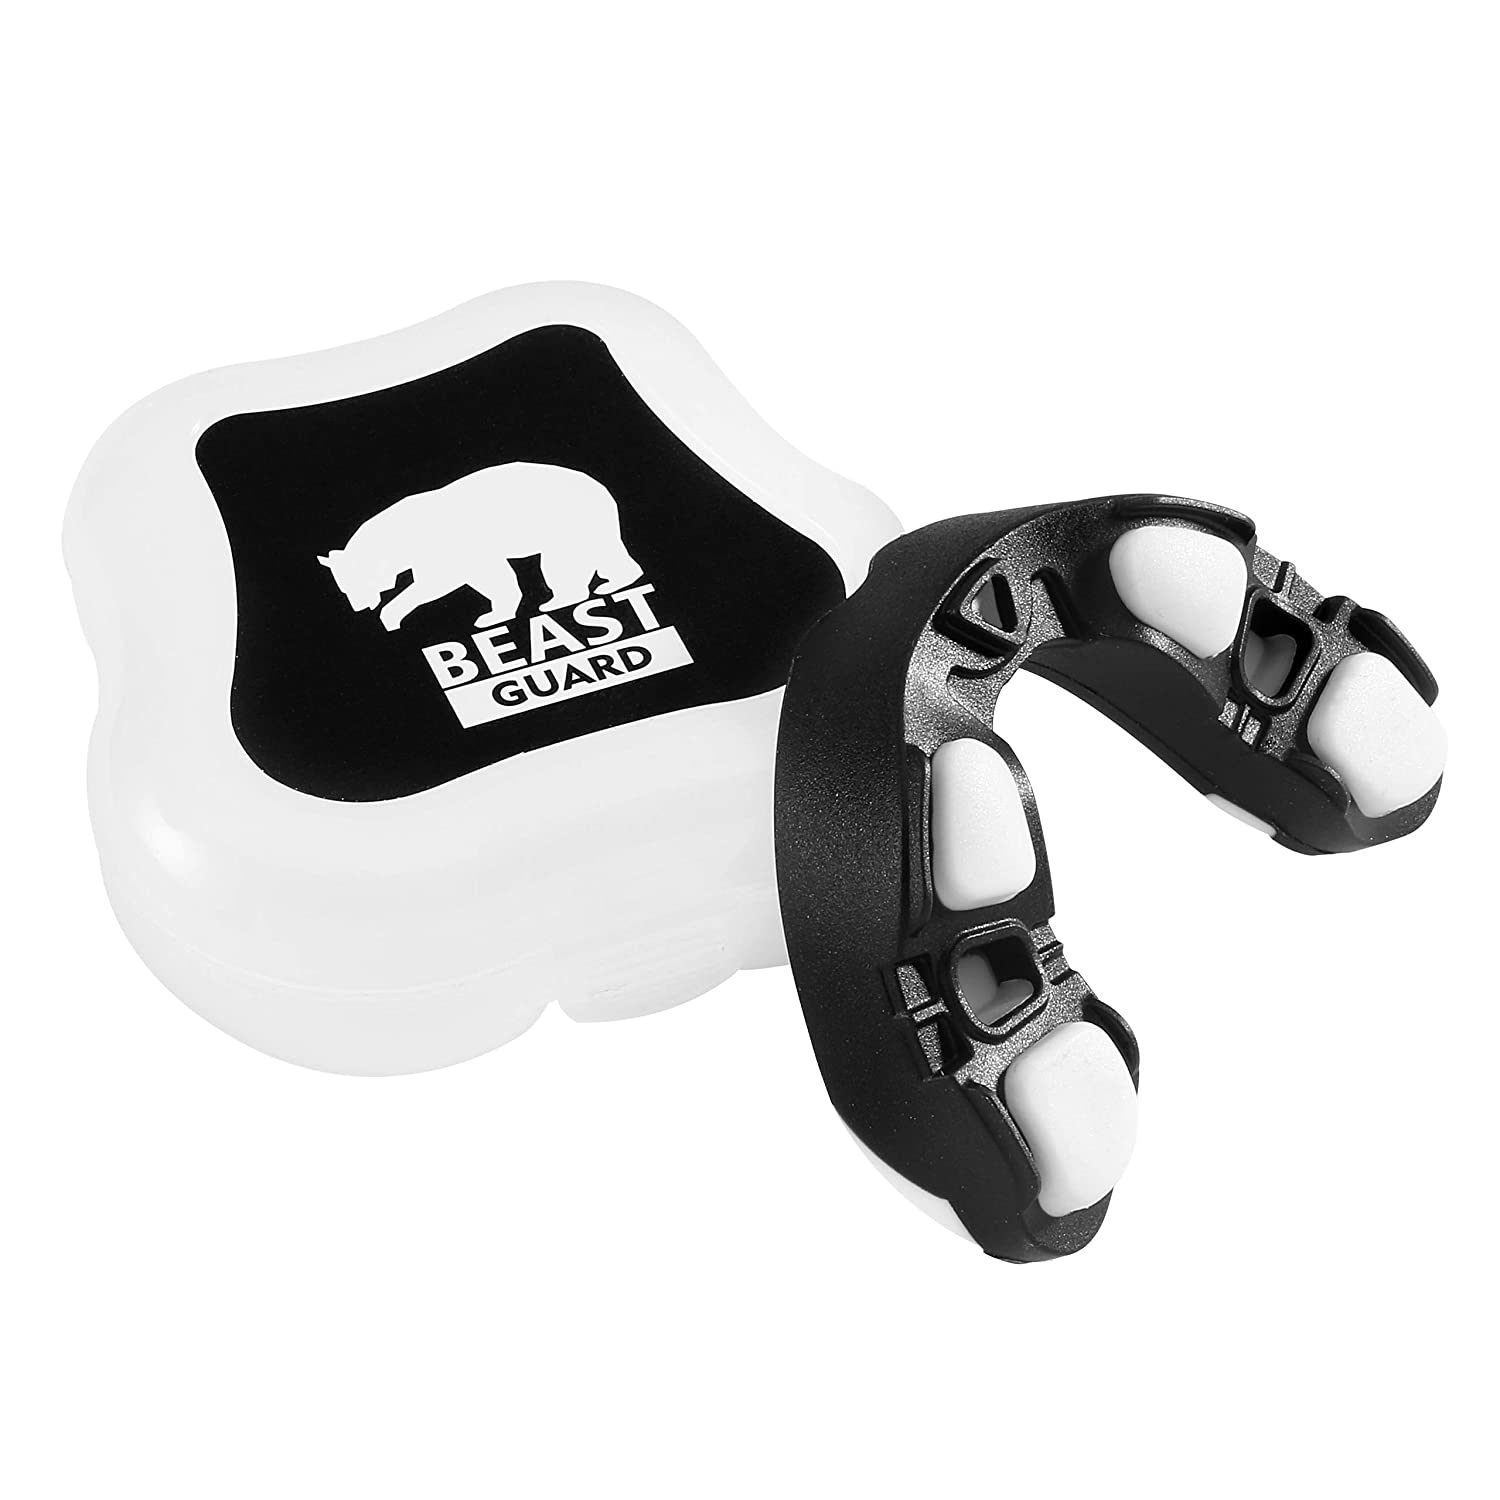 BBGuards Mouthguard/Gum Shield - Rugby, Boxing, MMA, Hockey. One Size. Moldable. Professional Mouthguard